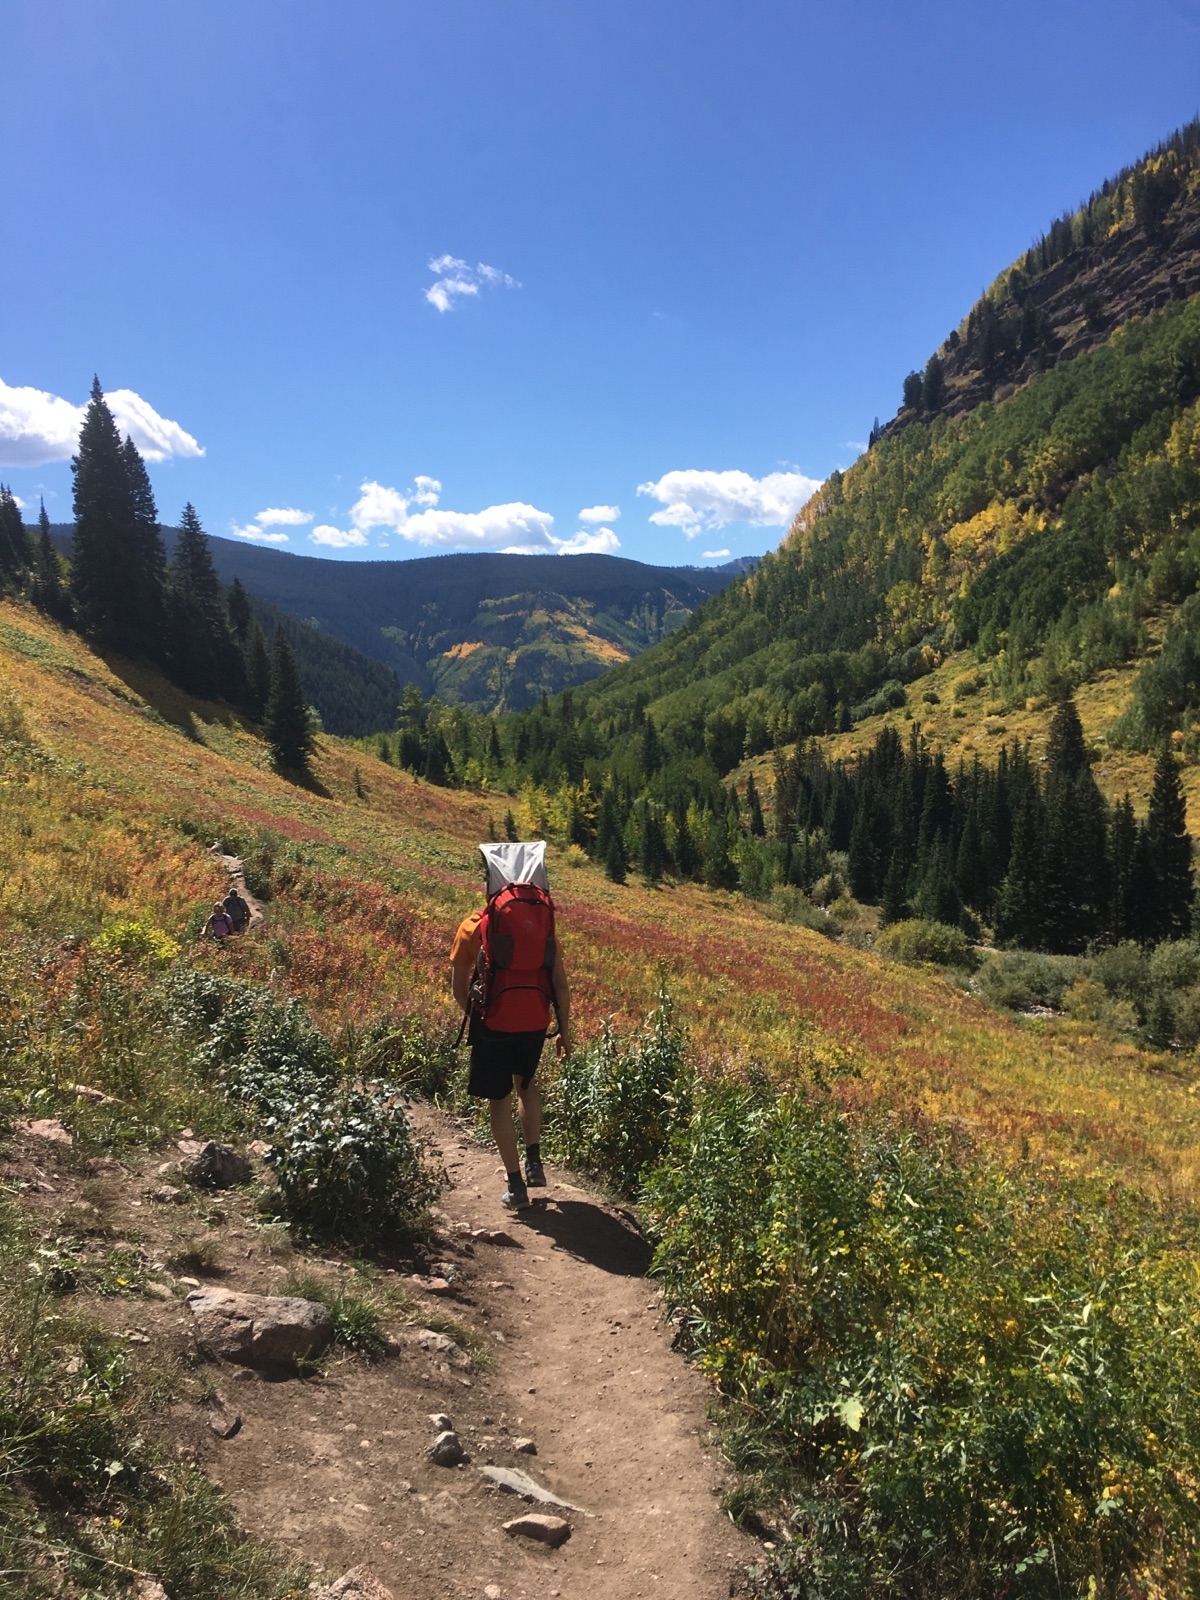 Hiking the Booth Falls Trail on September 16, 2016